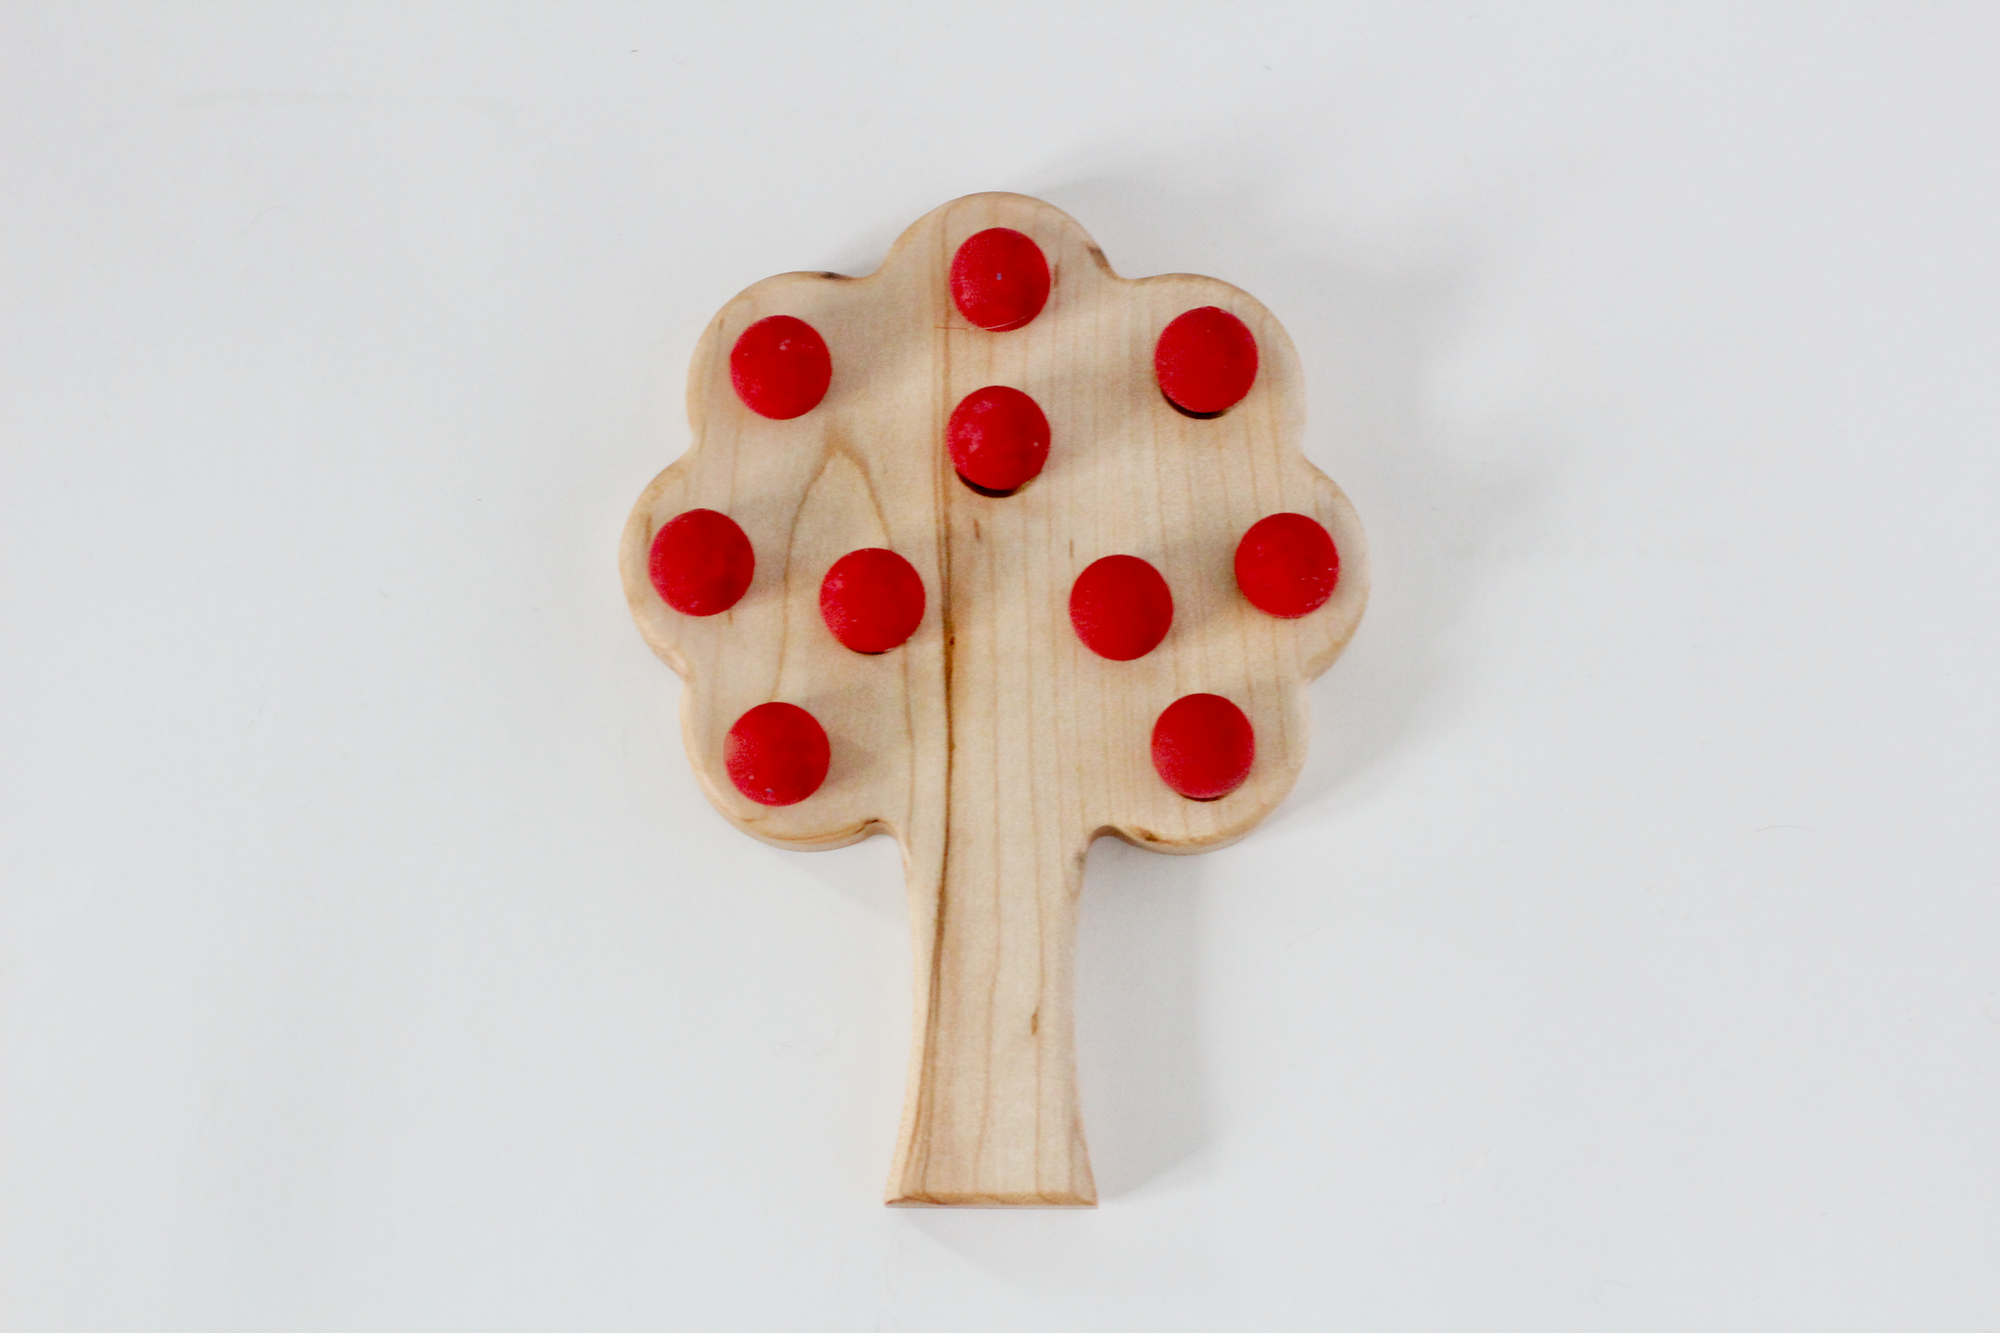 Tree shaped ten frame for early math learning.